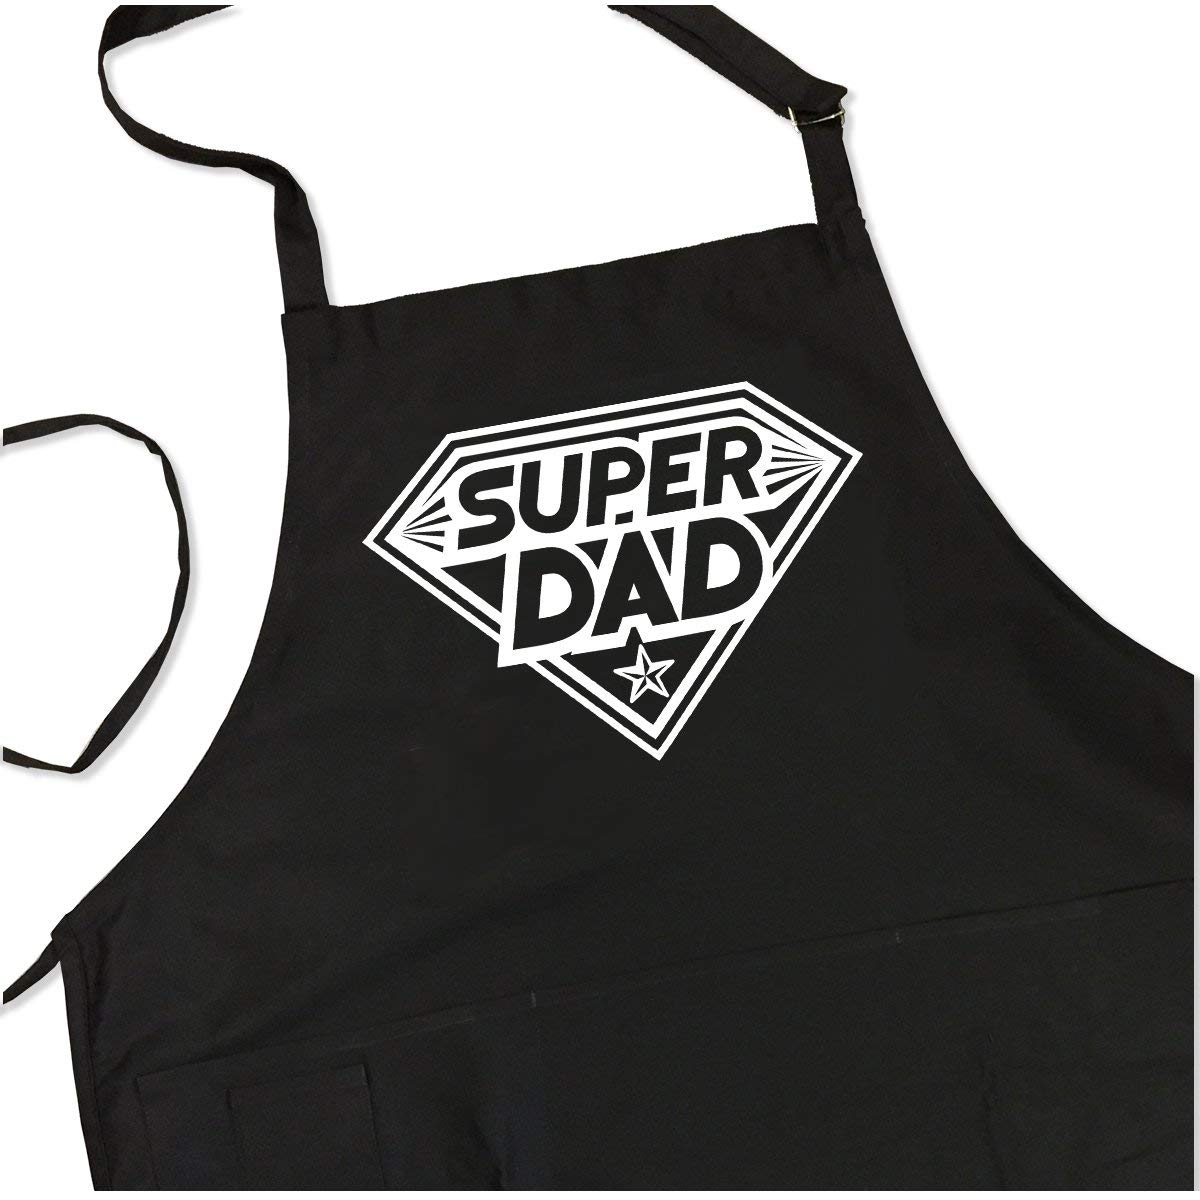 BBQ Grill Apron - Super Dad - Funny Apron For Dad - 1 Size Fits All Chef Apron High Quality Poly/Cotton 4 Utility Pockets, Adjustable Neck and Extra Long Waist Ties